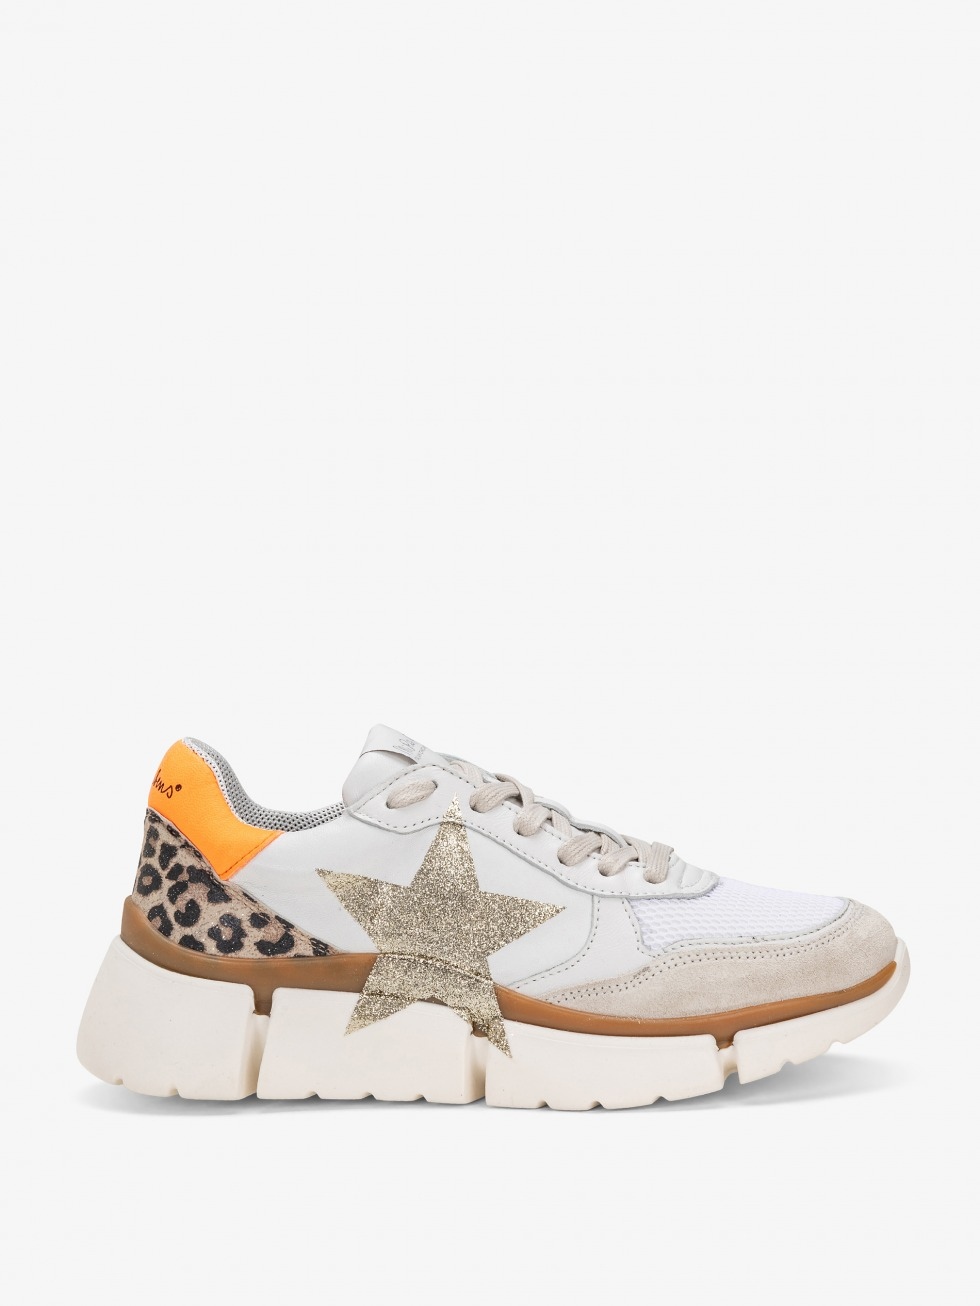 Stinger Chunky Sneakers - Jungle Neon Star